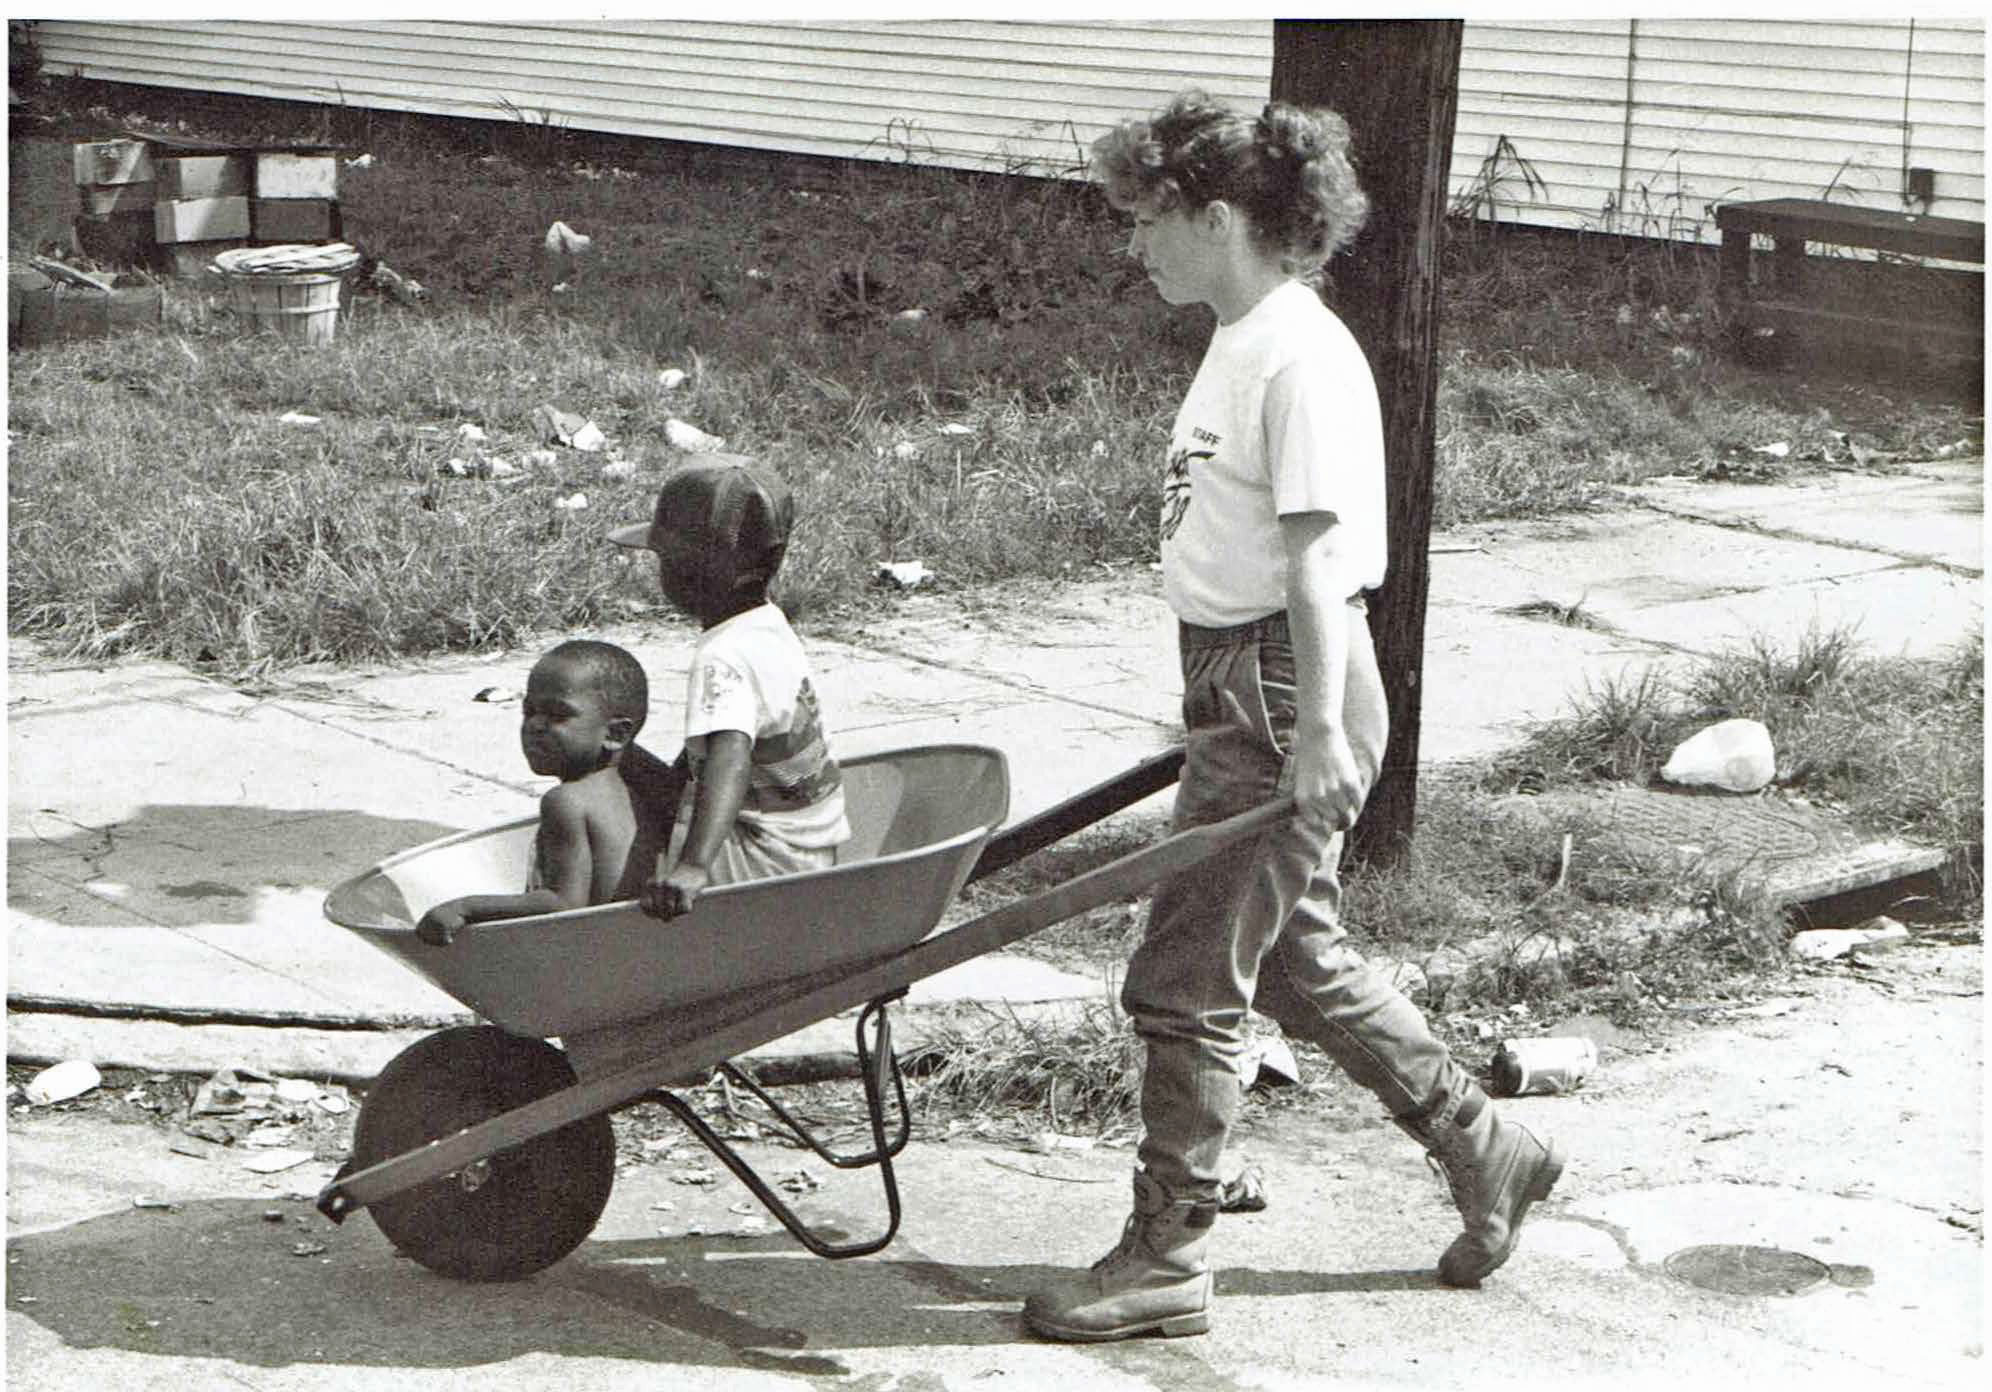 In 1989, a female SUNY Delhi volunteer pushes children to saefty in a wheelbarrow in hurricane damagaed Charleston, South Carolina.